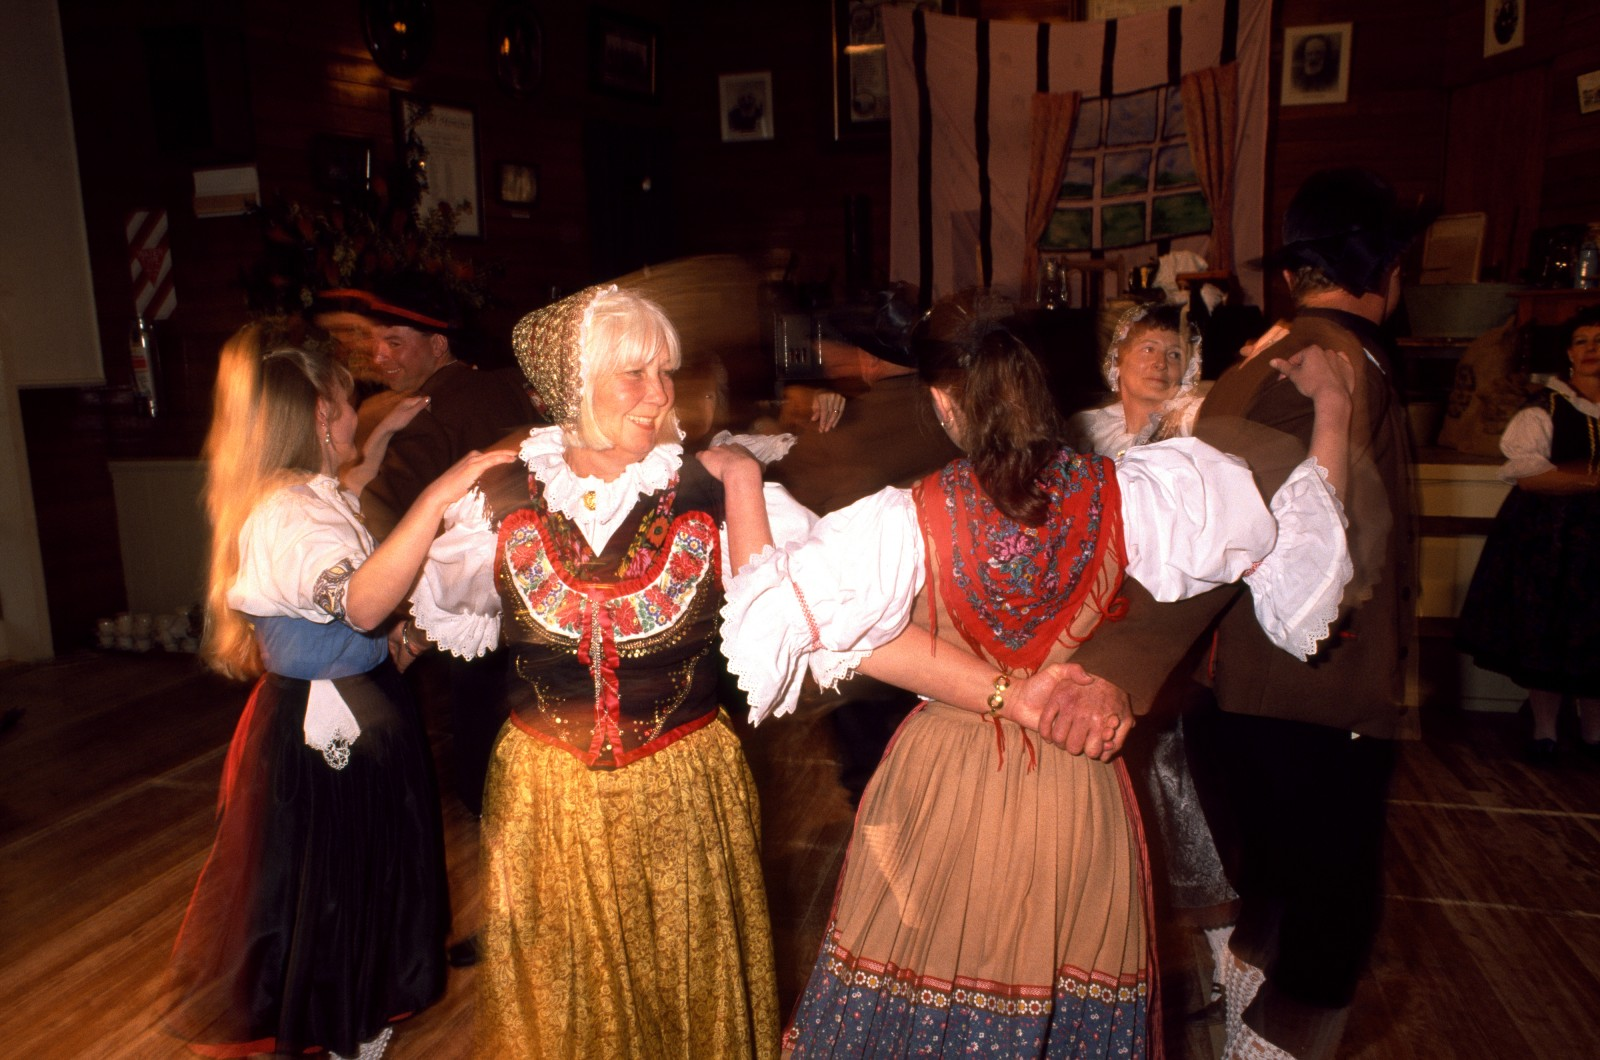 In the early years of unending backbreaking land clearance, dances were one of the Bohemians' few escapes, and they sometimes lasted for days on end. The rhythms of the polka and schottische can still be heard in Puhoi, especially during the annual celebration of the arrival of the pioneers, when dancers dress in the regional costumes of their ancestors and kick up their heels in the local hall.